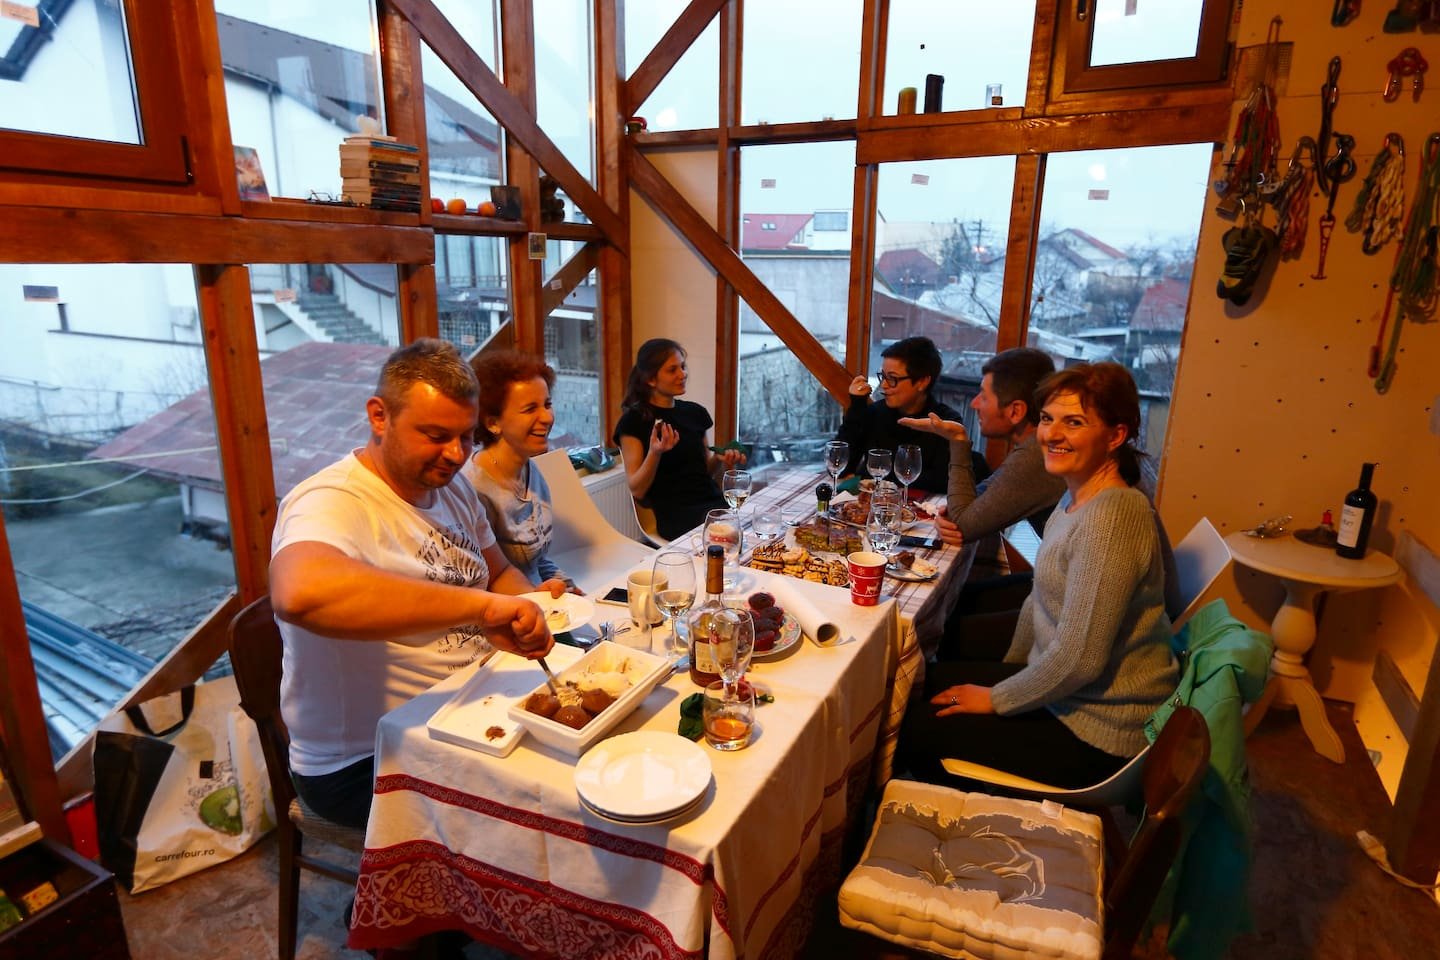 Quality time with friends and family, our house is a friendly one! Join us for a glass of wine and a good chat!  This is happening in the upper part of the climbing gym, witch is in the same yard, just a few meters away from the guest house.